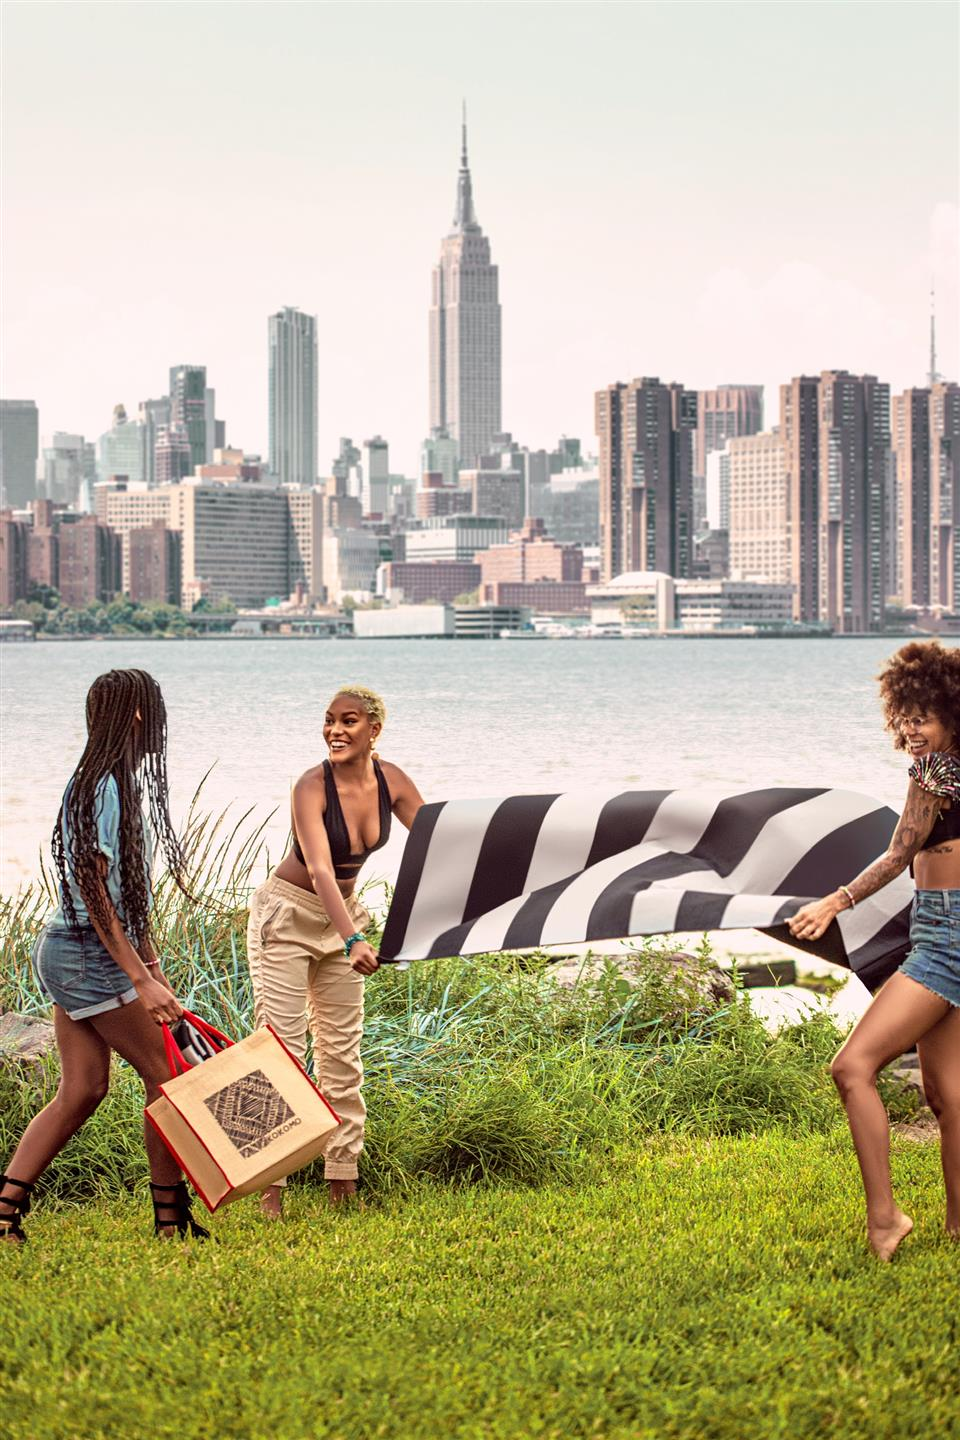 two girls putting a striped sheet down on the grass with a third girl holding a tote bag. City skyline and water in background.